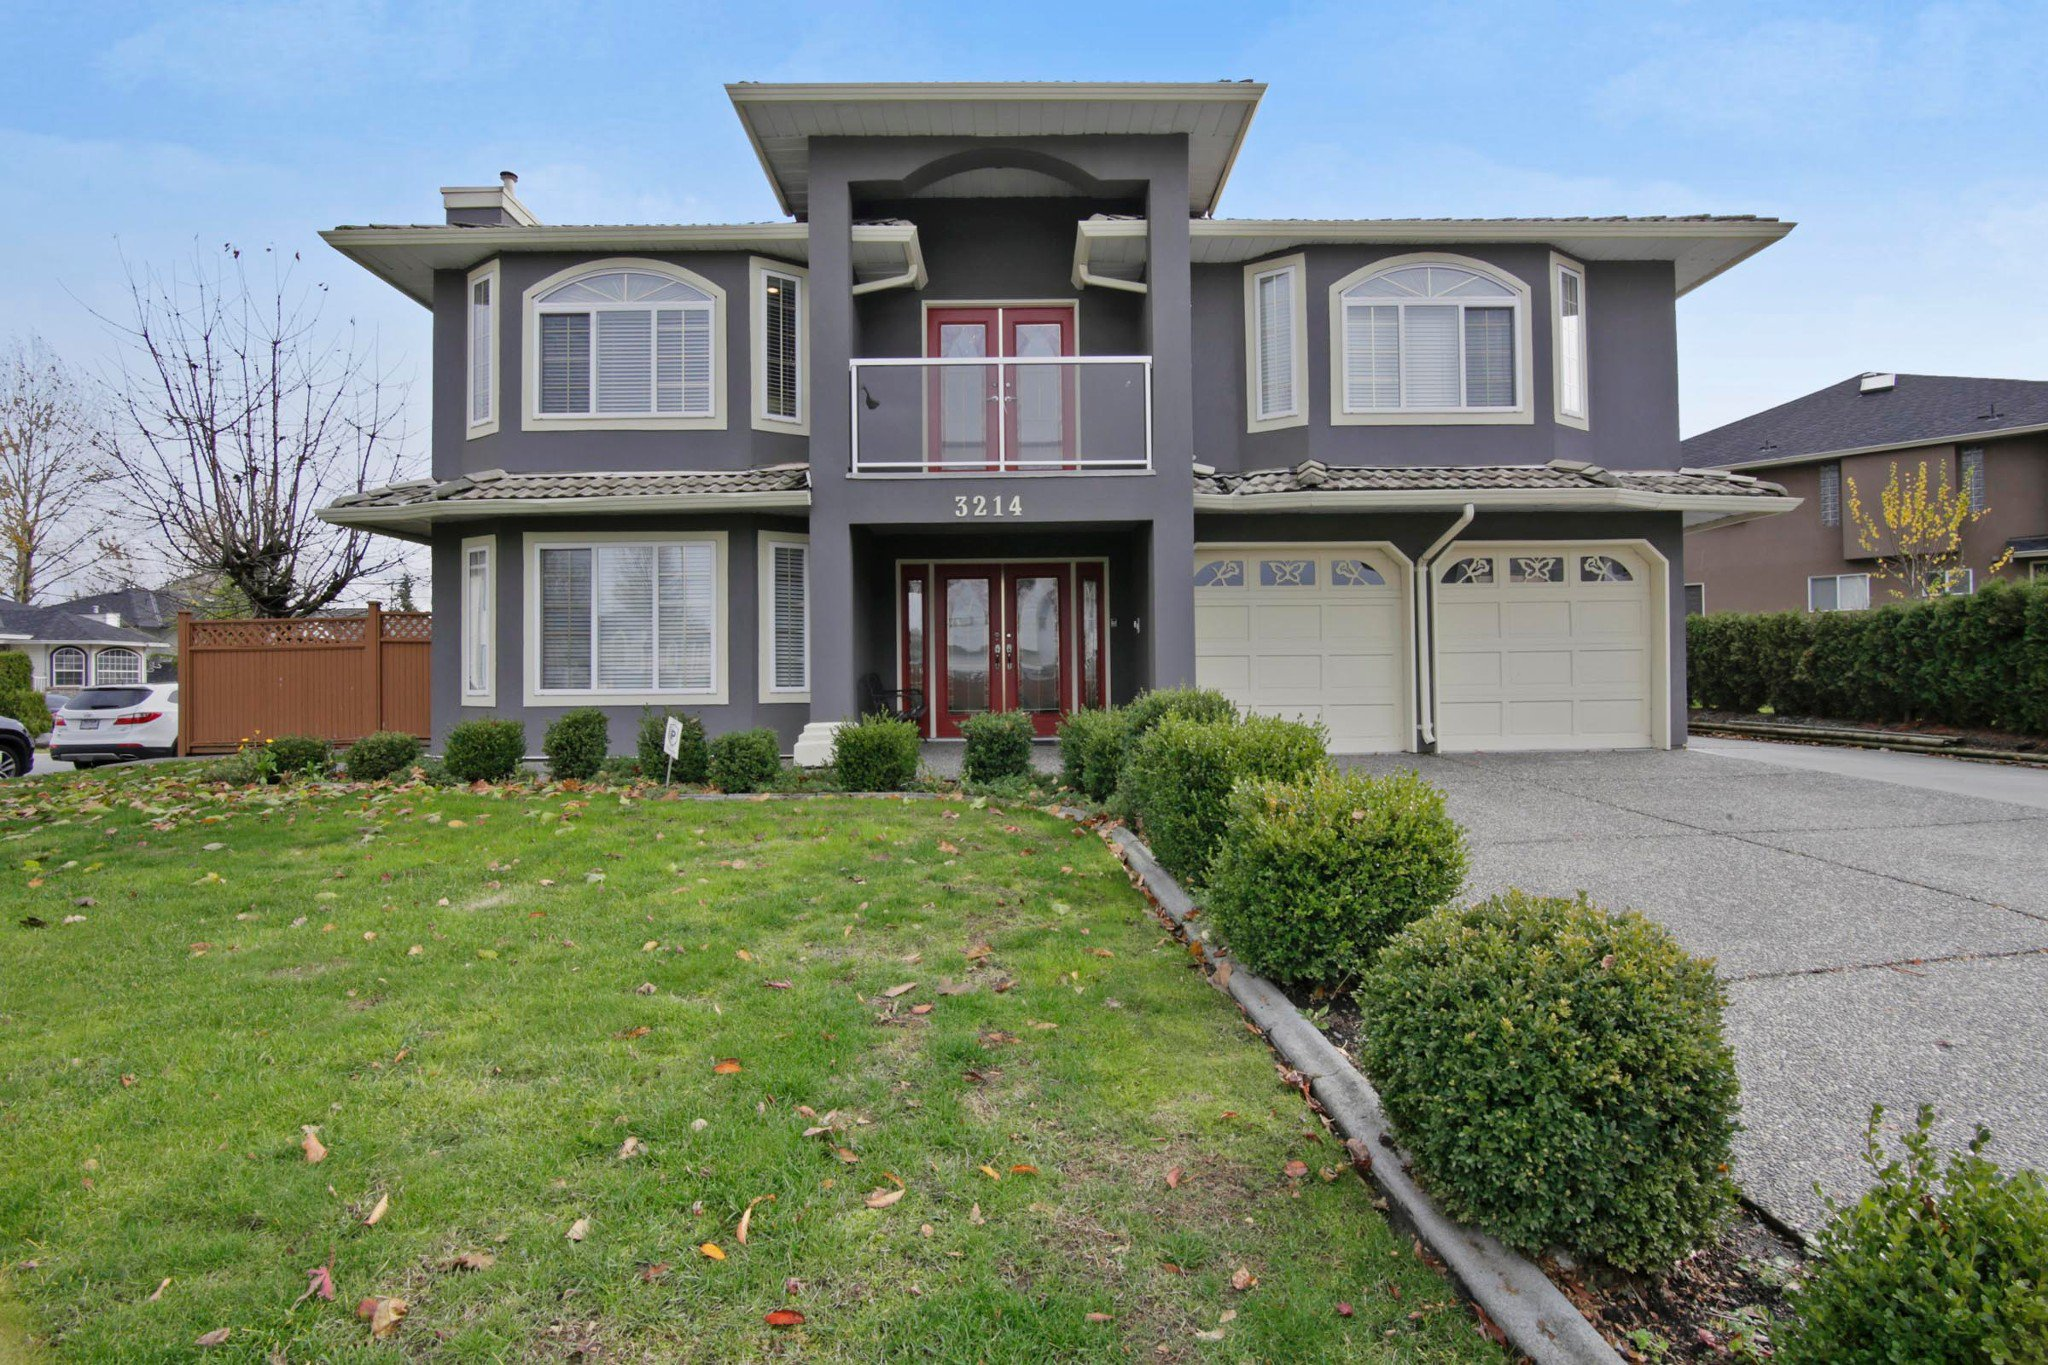 Main Photo: 3214 CURLEW Drive in Abbotsford: Abbotsford West House for sale : MLS®# R2222530